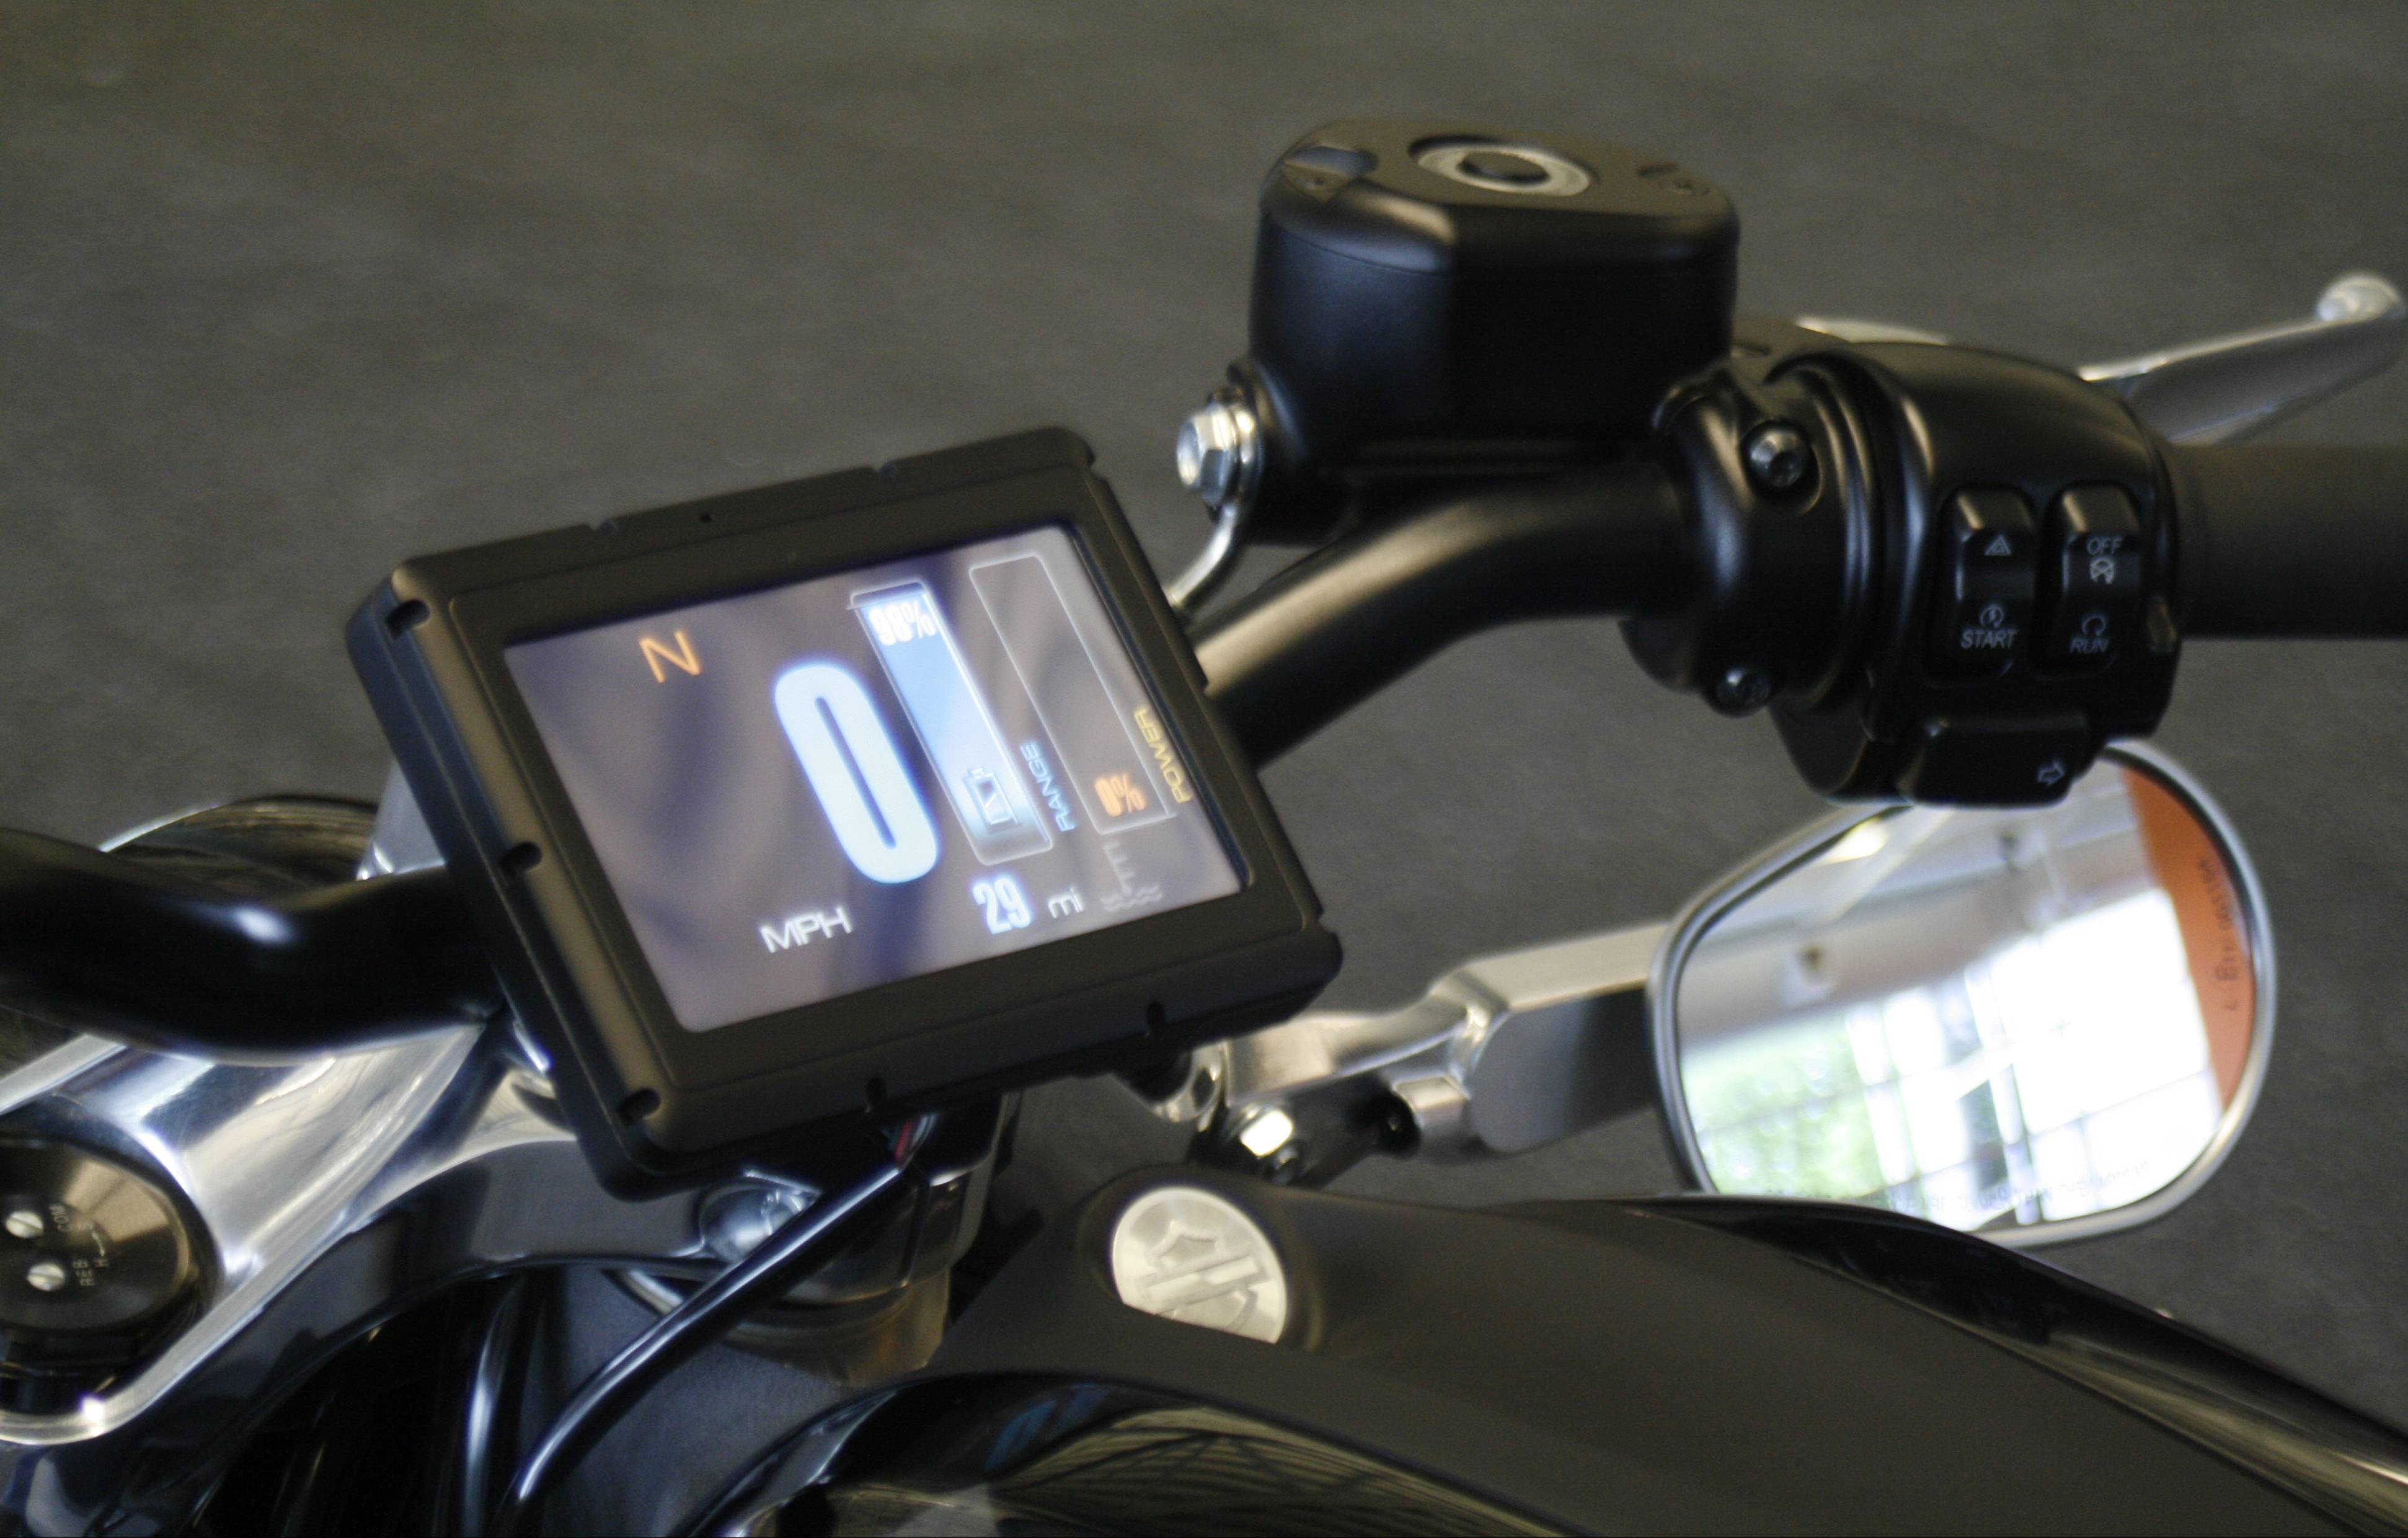 The control screen on Harley-Davidson's new electric motorcycle, the LiveWire.